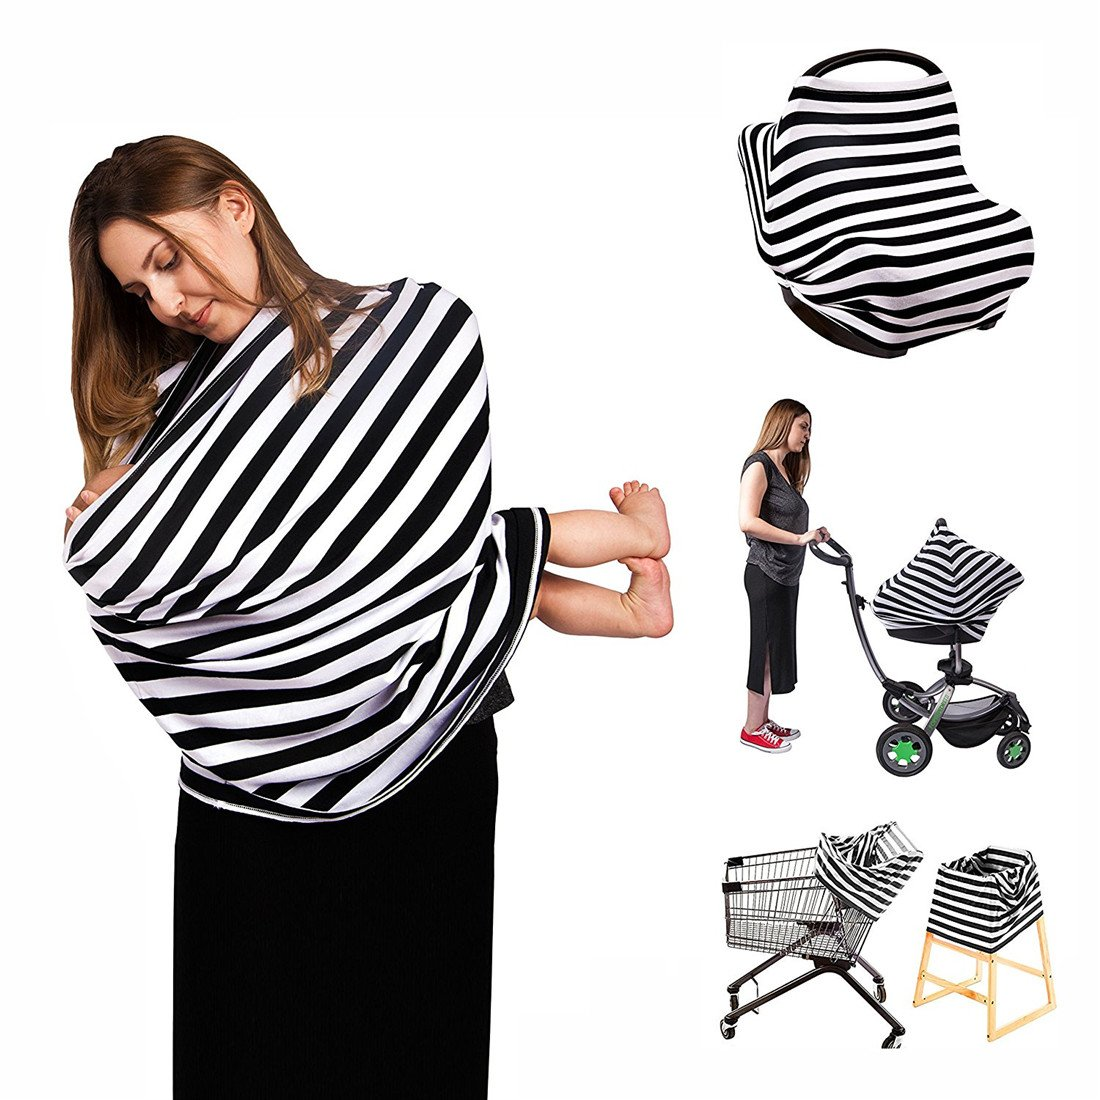 Neufashion Baby Car Seat Canopy Nursing Cover Scarf Baby Stroller Sunshade Multi Use Stretchy Cover for Breast Feeding Gift for Boys Girls